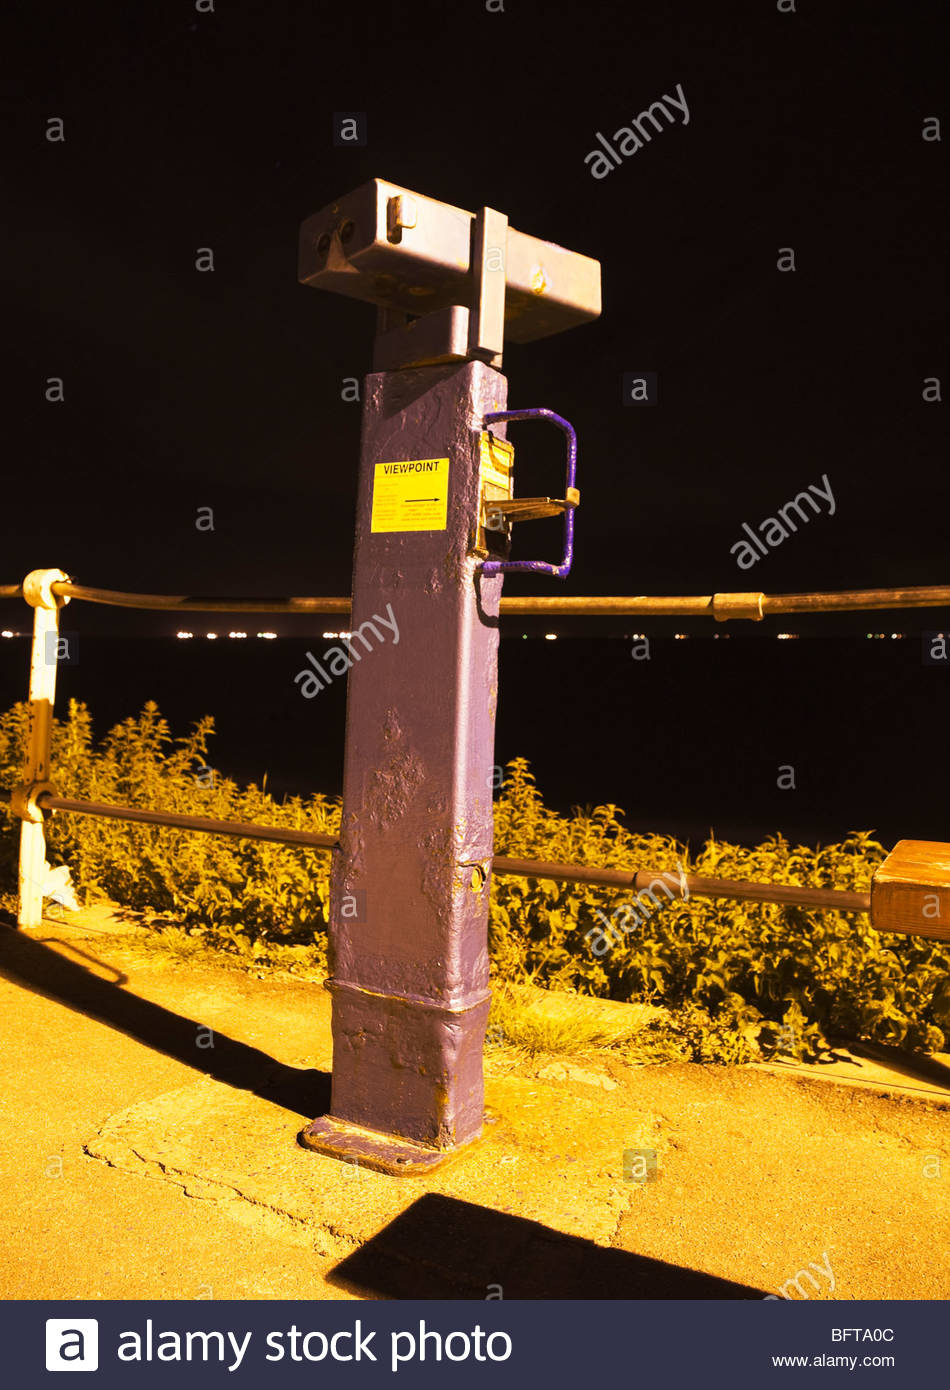 Coin operated telescope at night - Stock Image